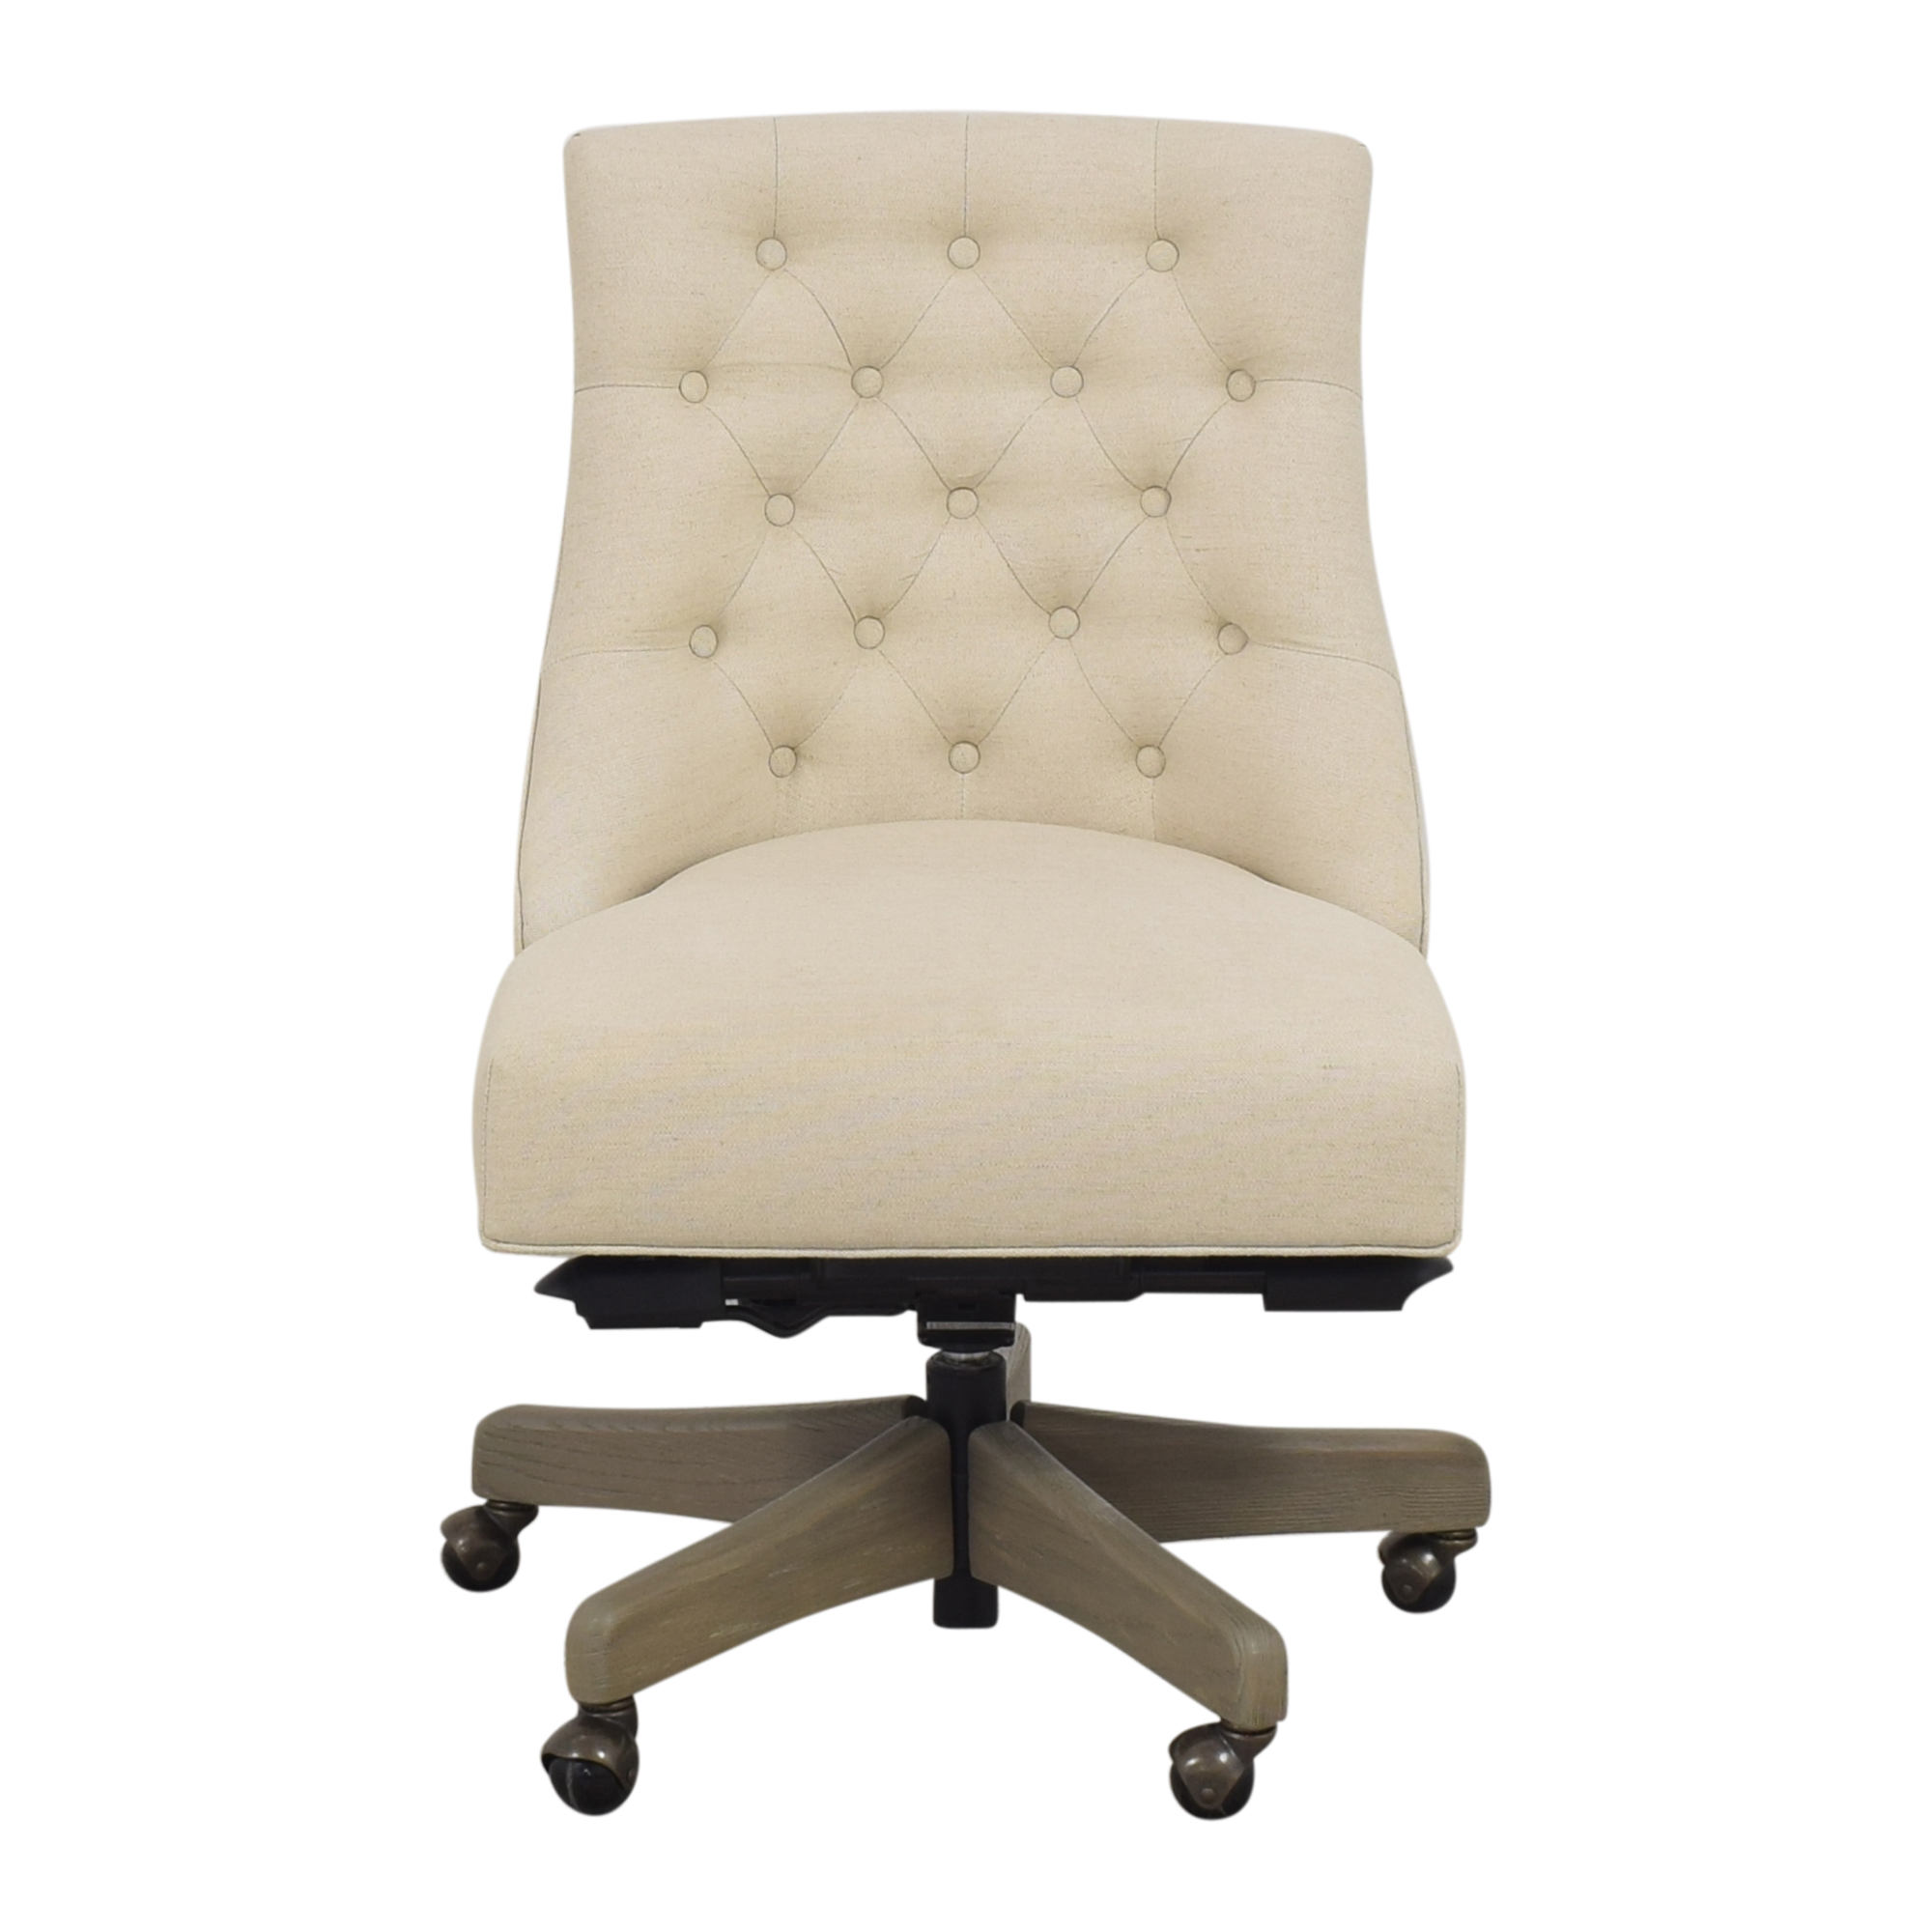 buy Pottery Barn Hayes Tufted Swivel Desk Chair Pottery Barn Home Office Chairs